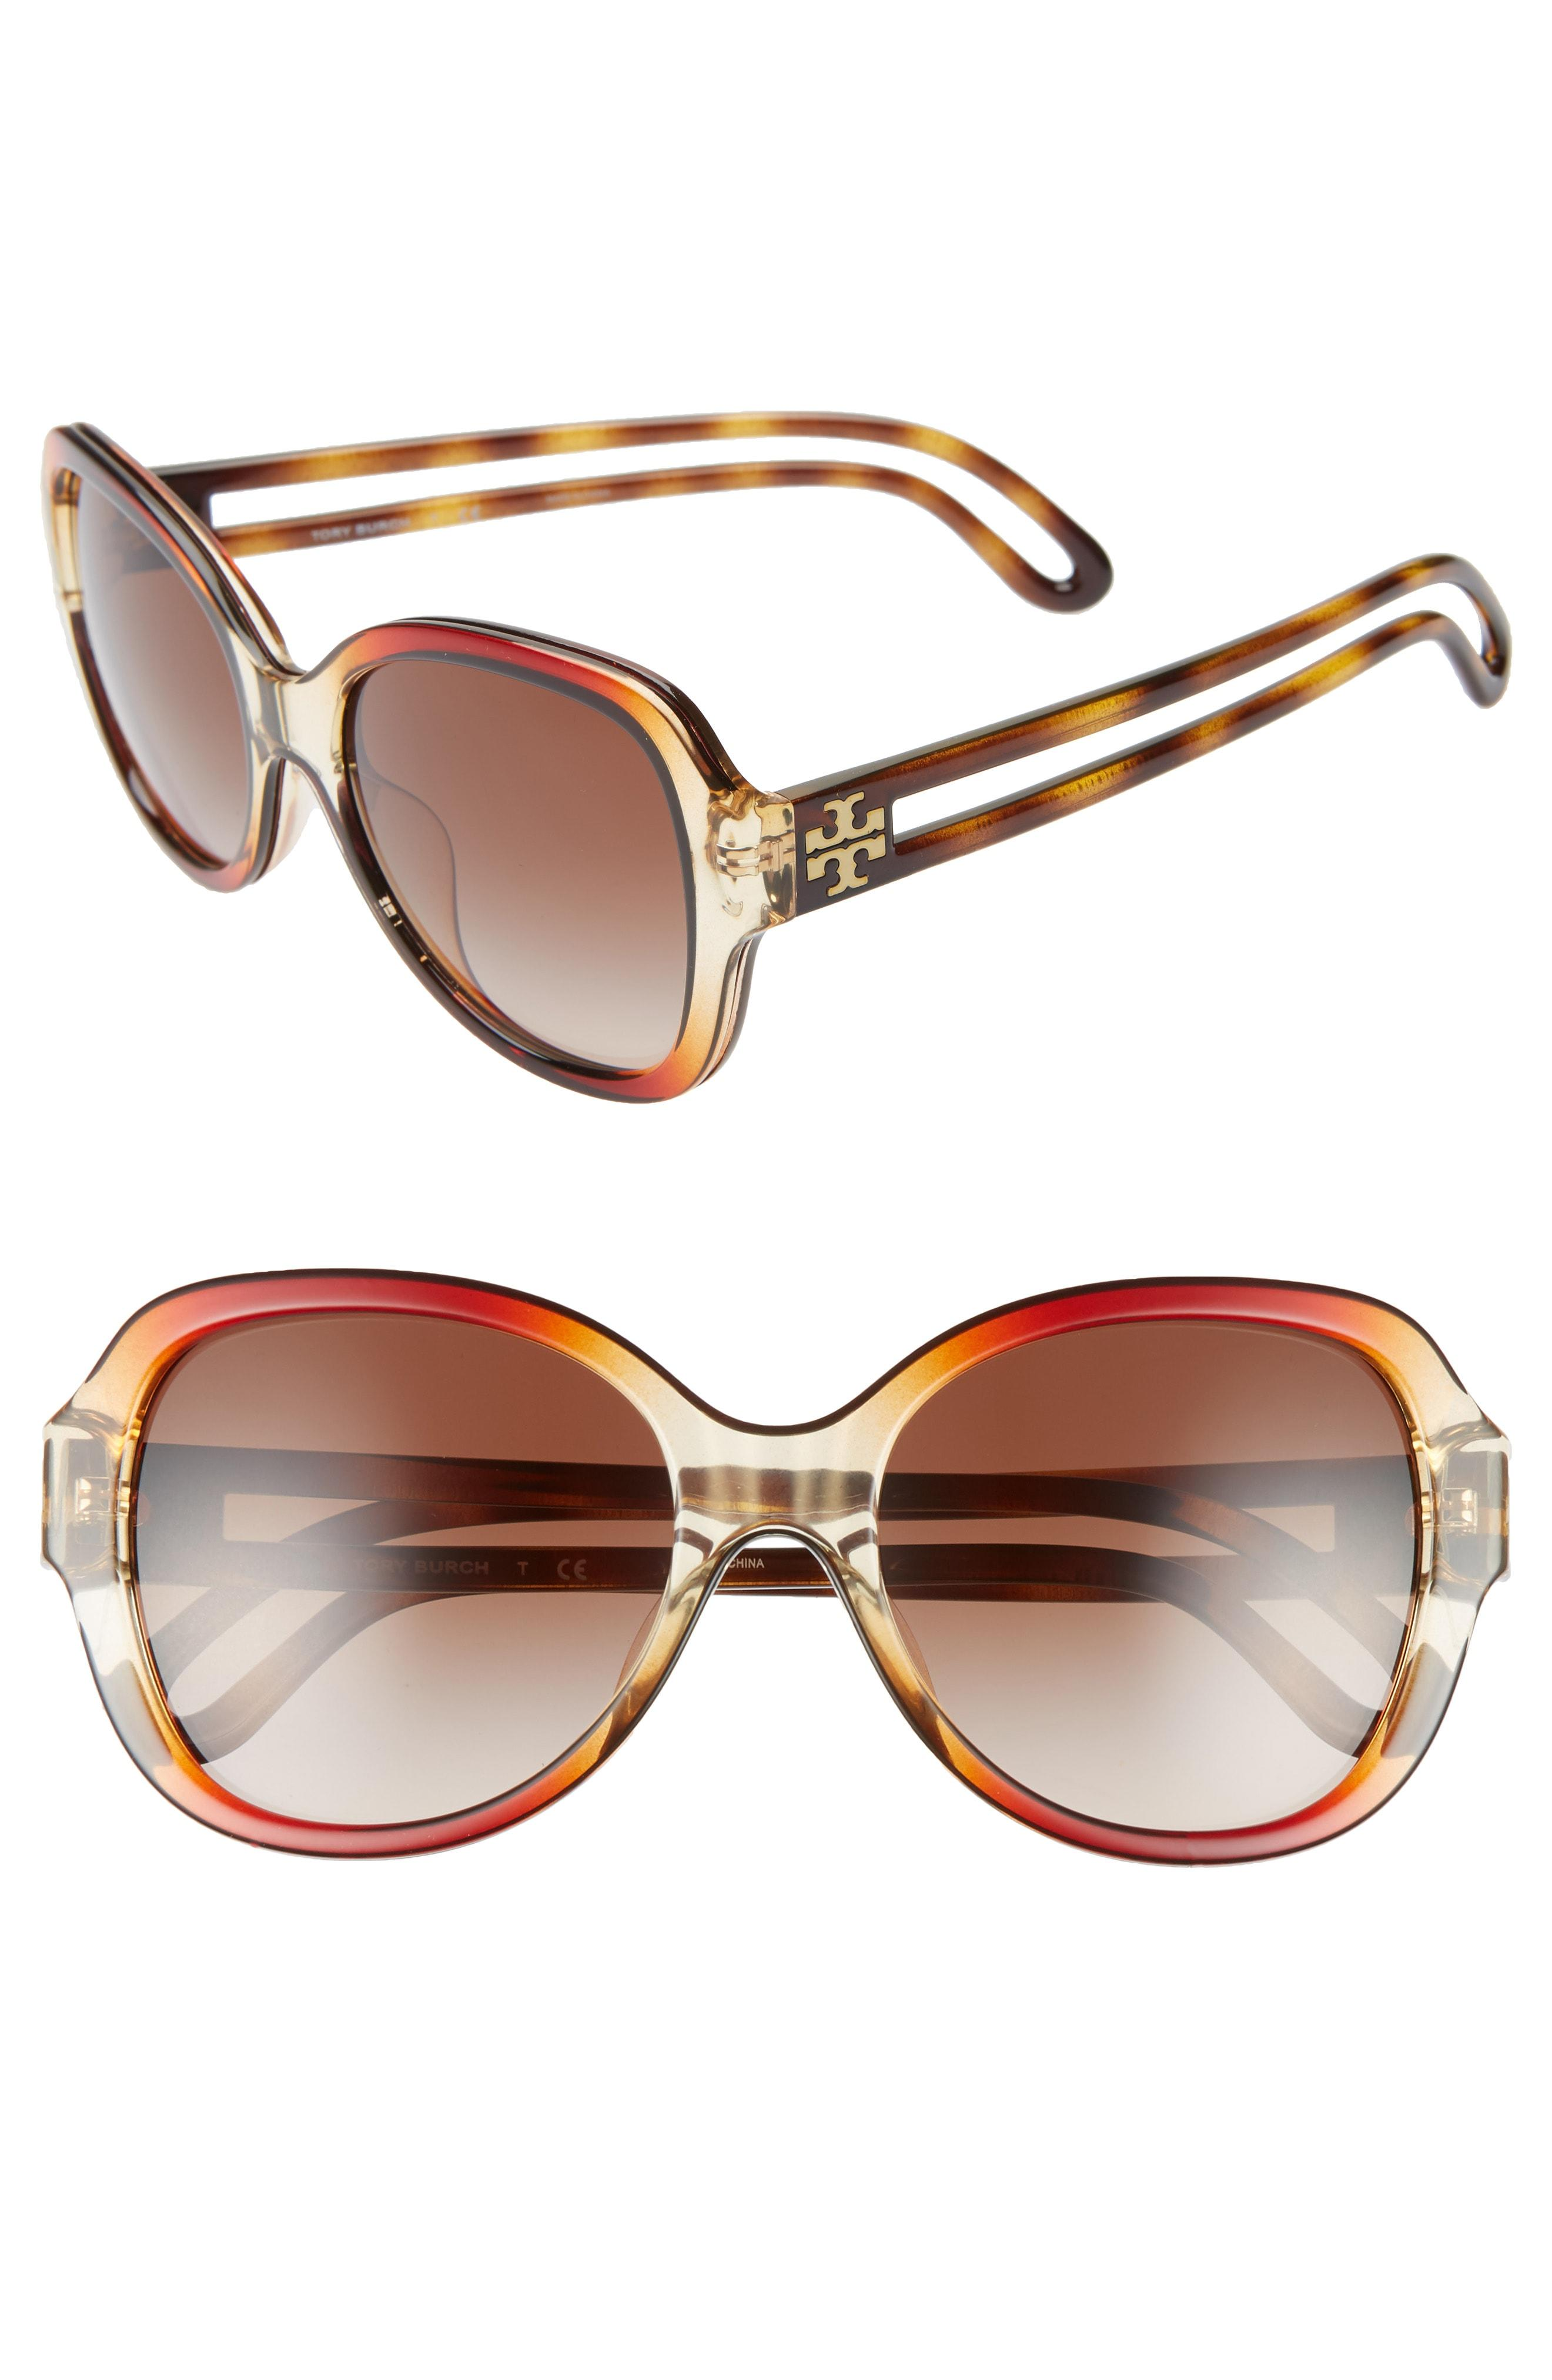 ca732addfb Lyst - Tory Burch 55mm Gradient Butterfly Sunglasses - in Brown